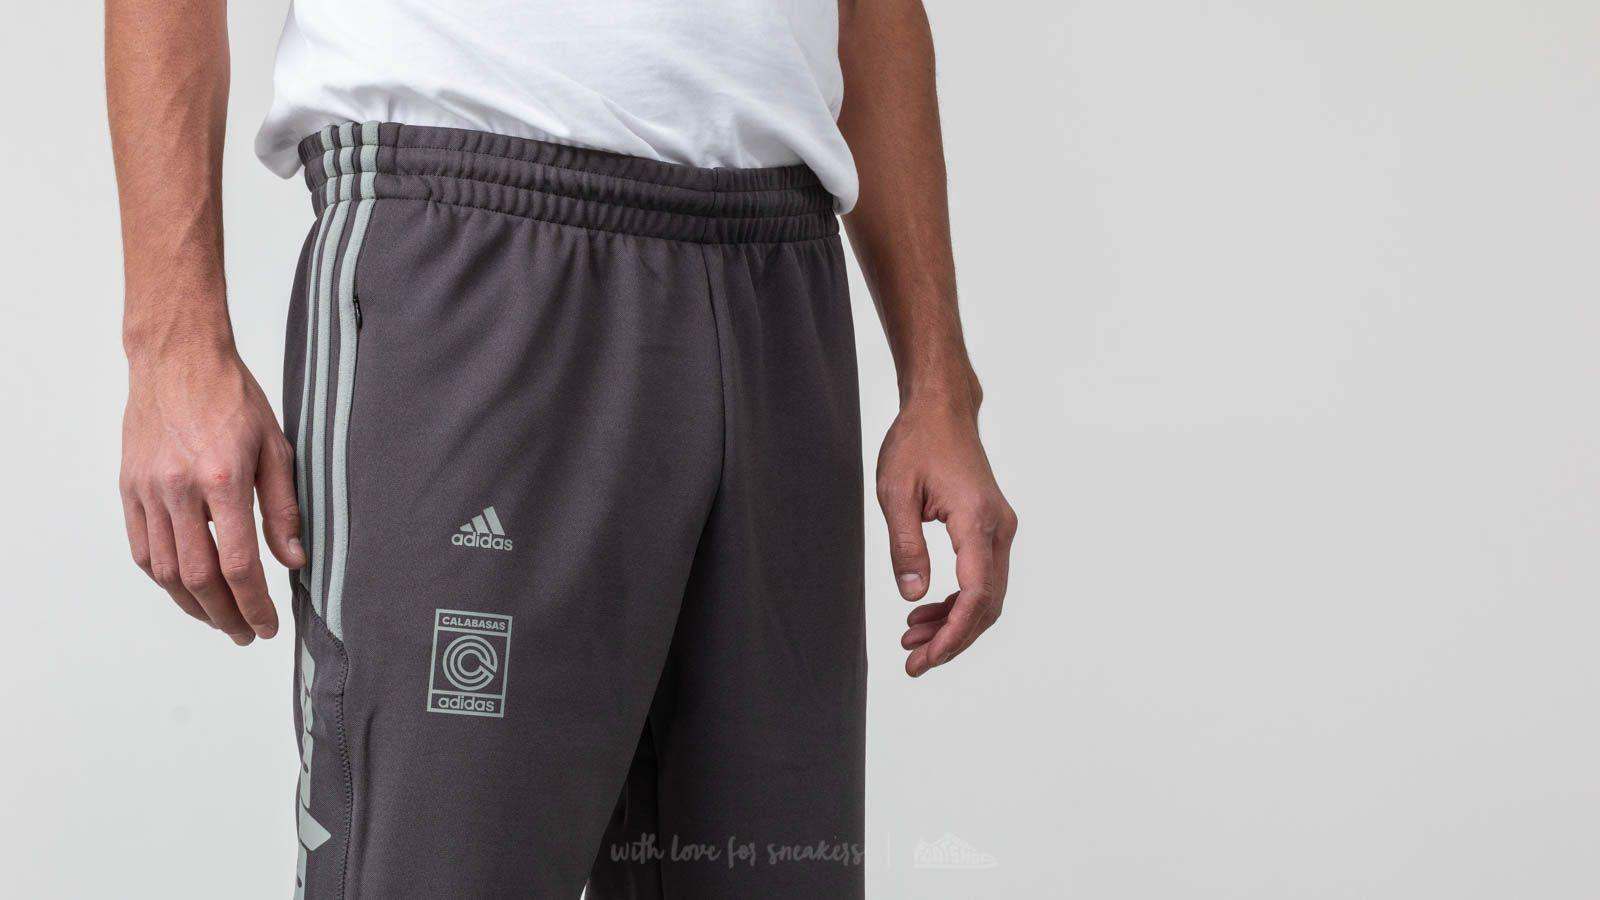 93cace70 adidas Originals Adidas Calabasas Track Pants Ink/ Wolves for Men - Lyst